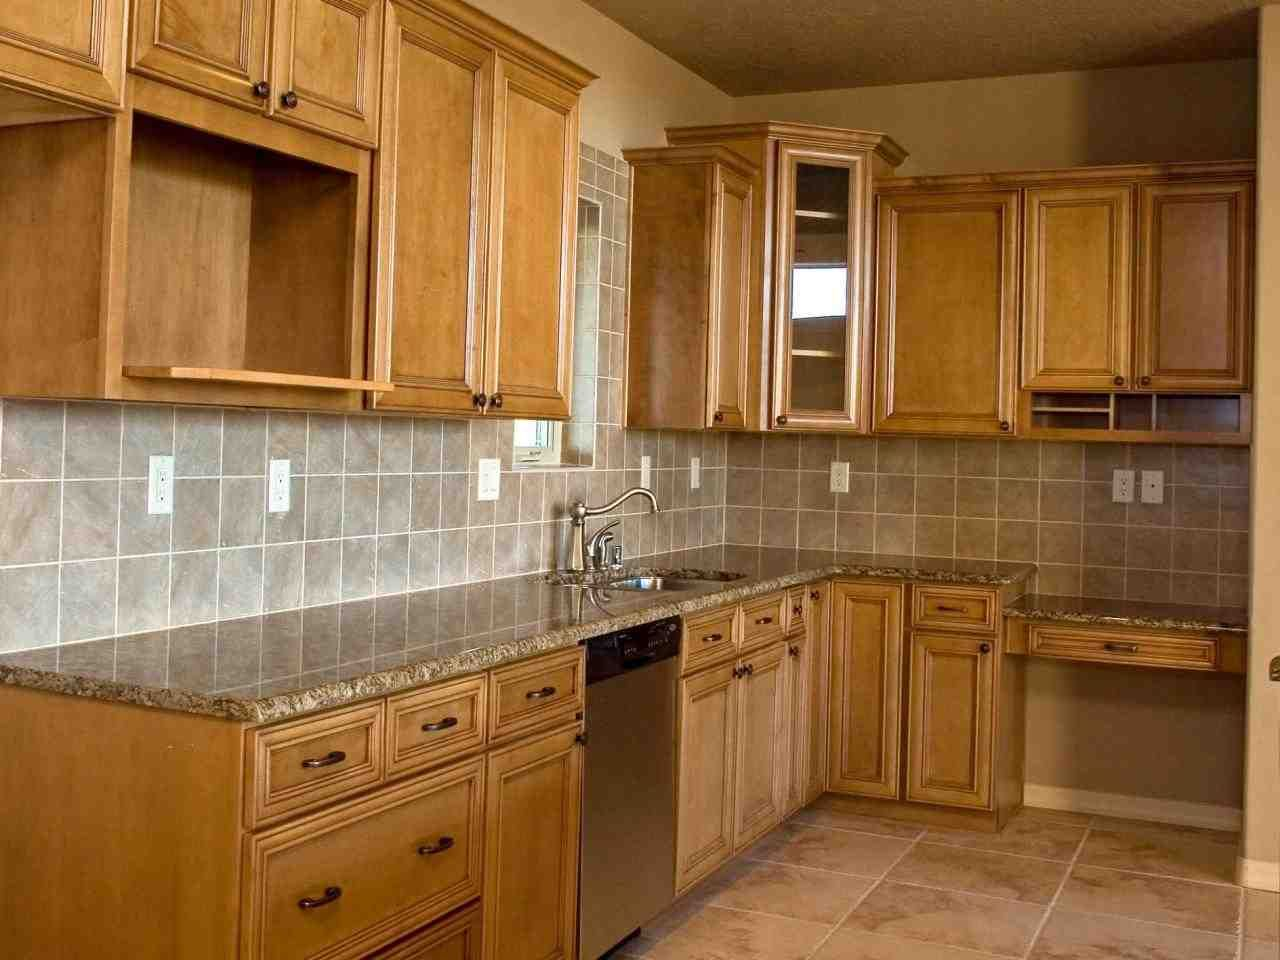 Unfinished Oak Kitchen Cabinet Doors Kitchen Furniture Design Kitchen Cabinet Door Styles New Kitchen Cabinet Doors